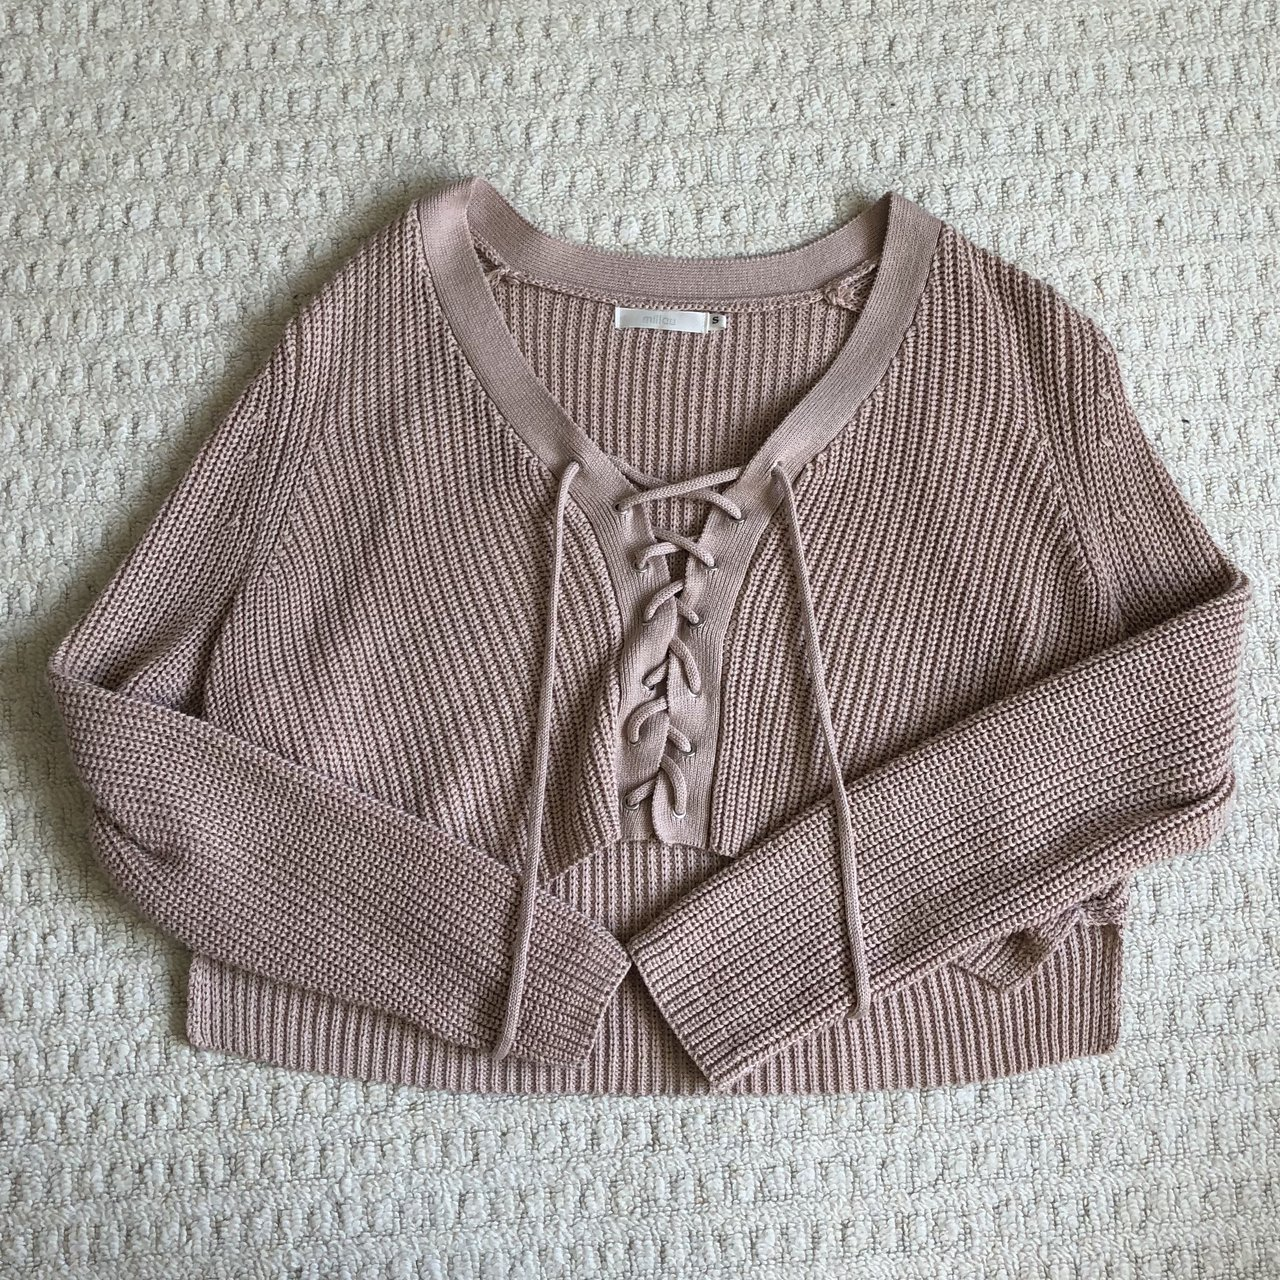 7a7881a047 Lf lace up cropped sweater in rose color. Originally  138. I - Depop